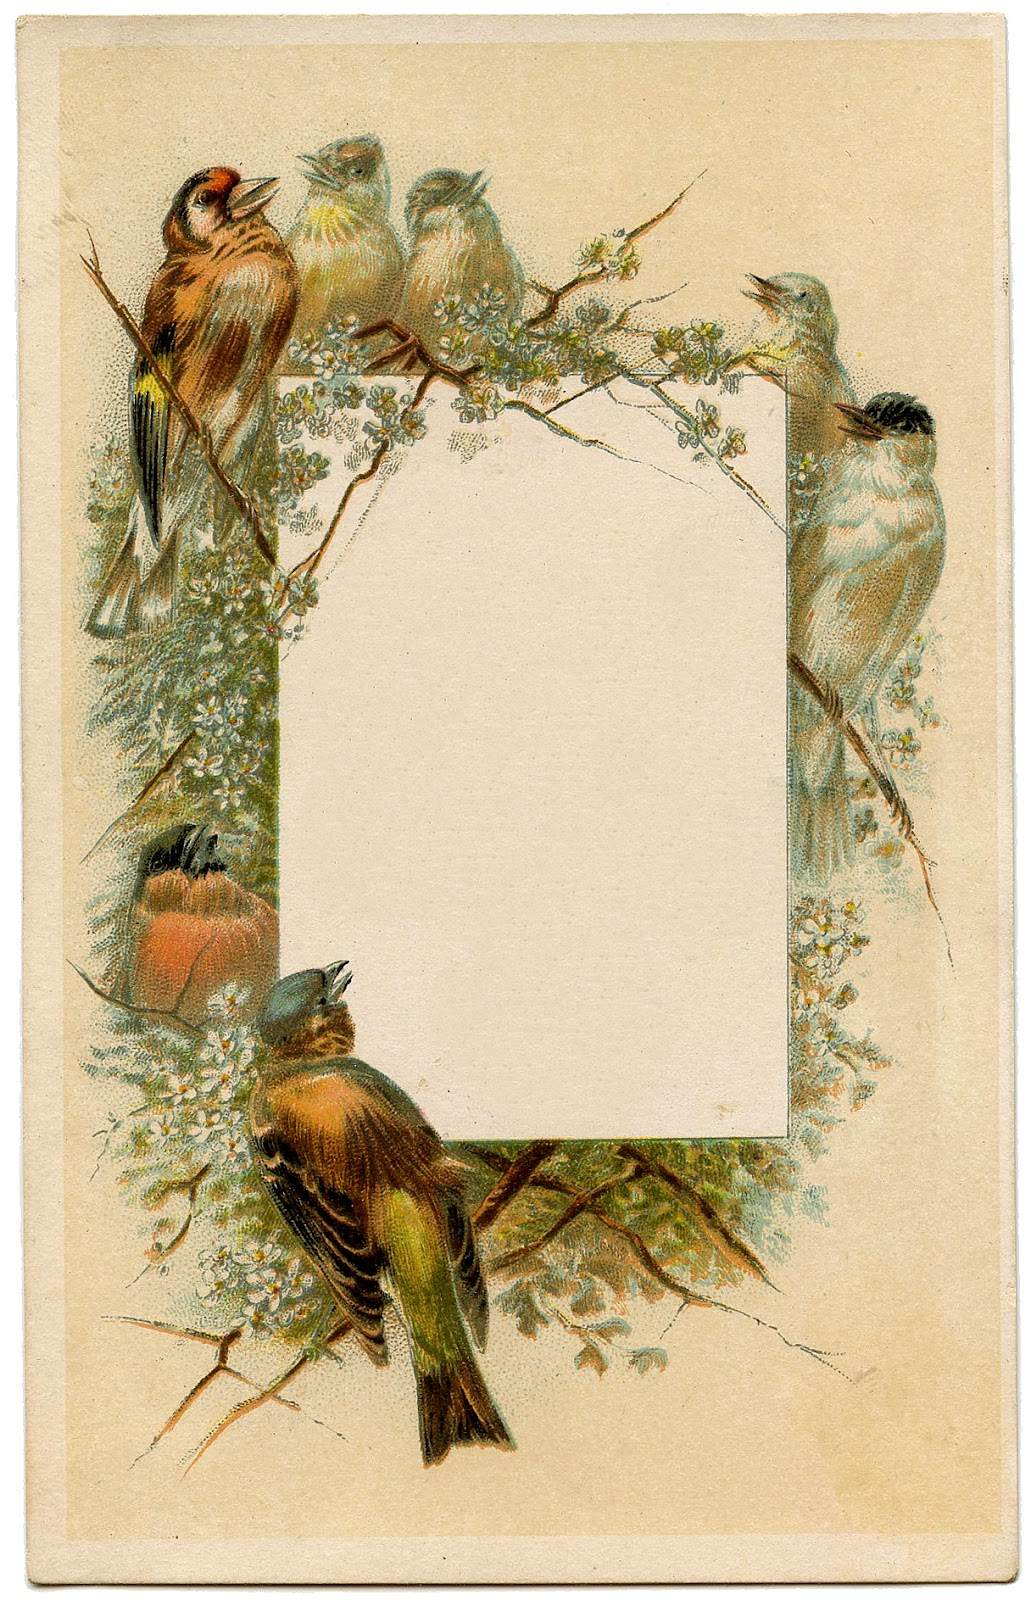 Vintage Frames - Birds and Flowers - The Graphics Fairy